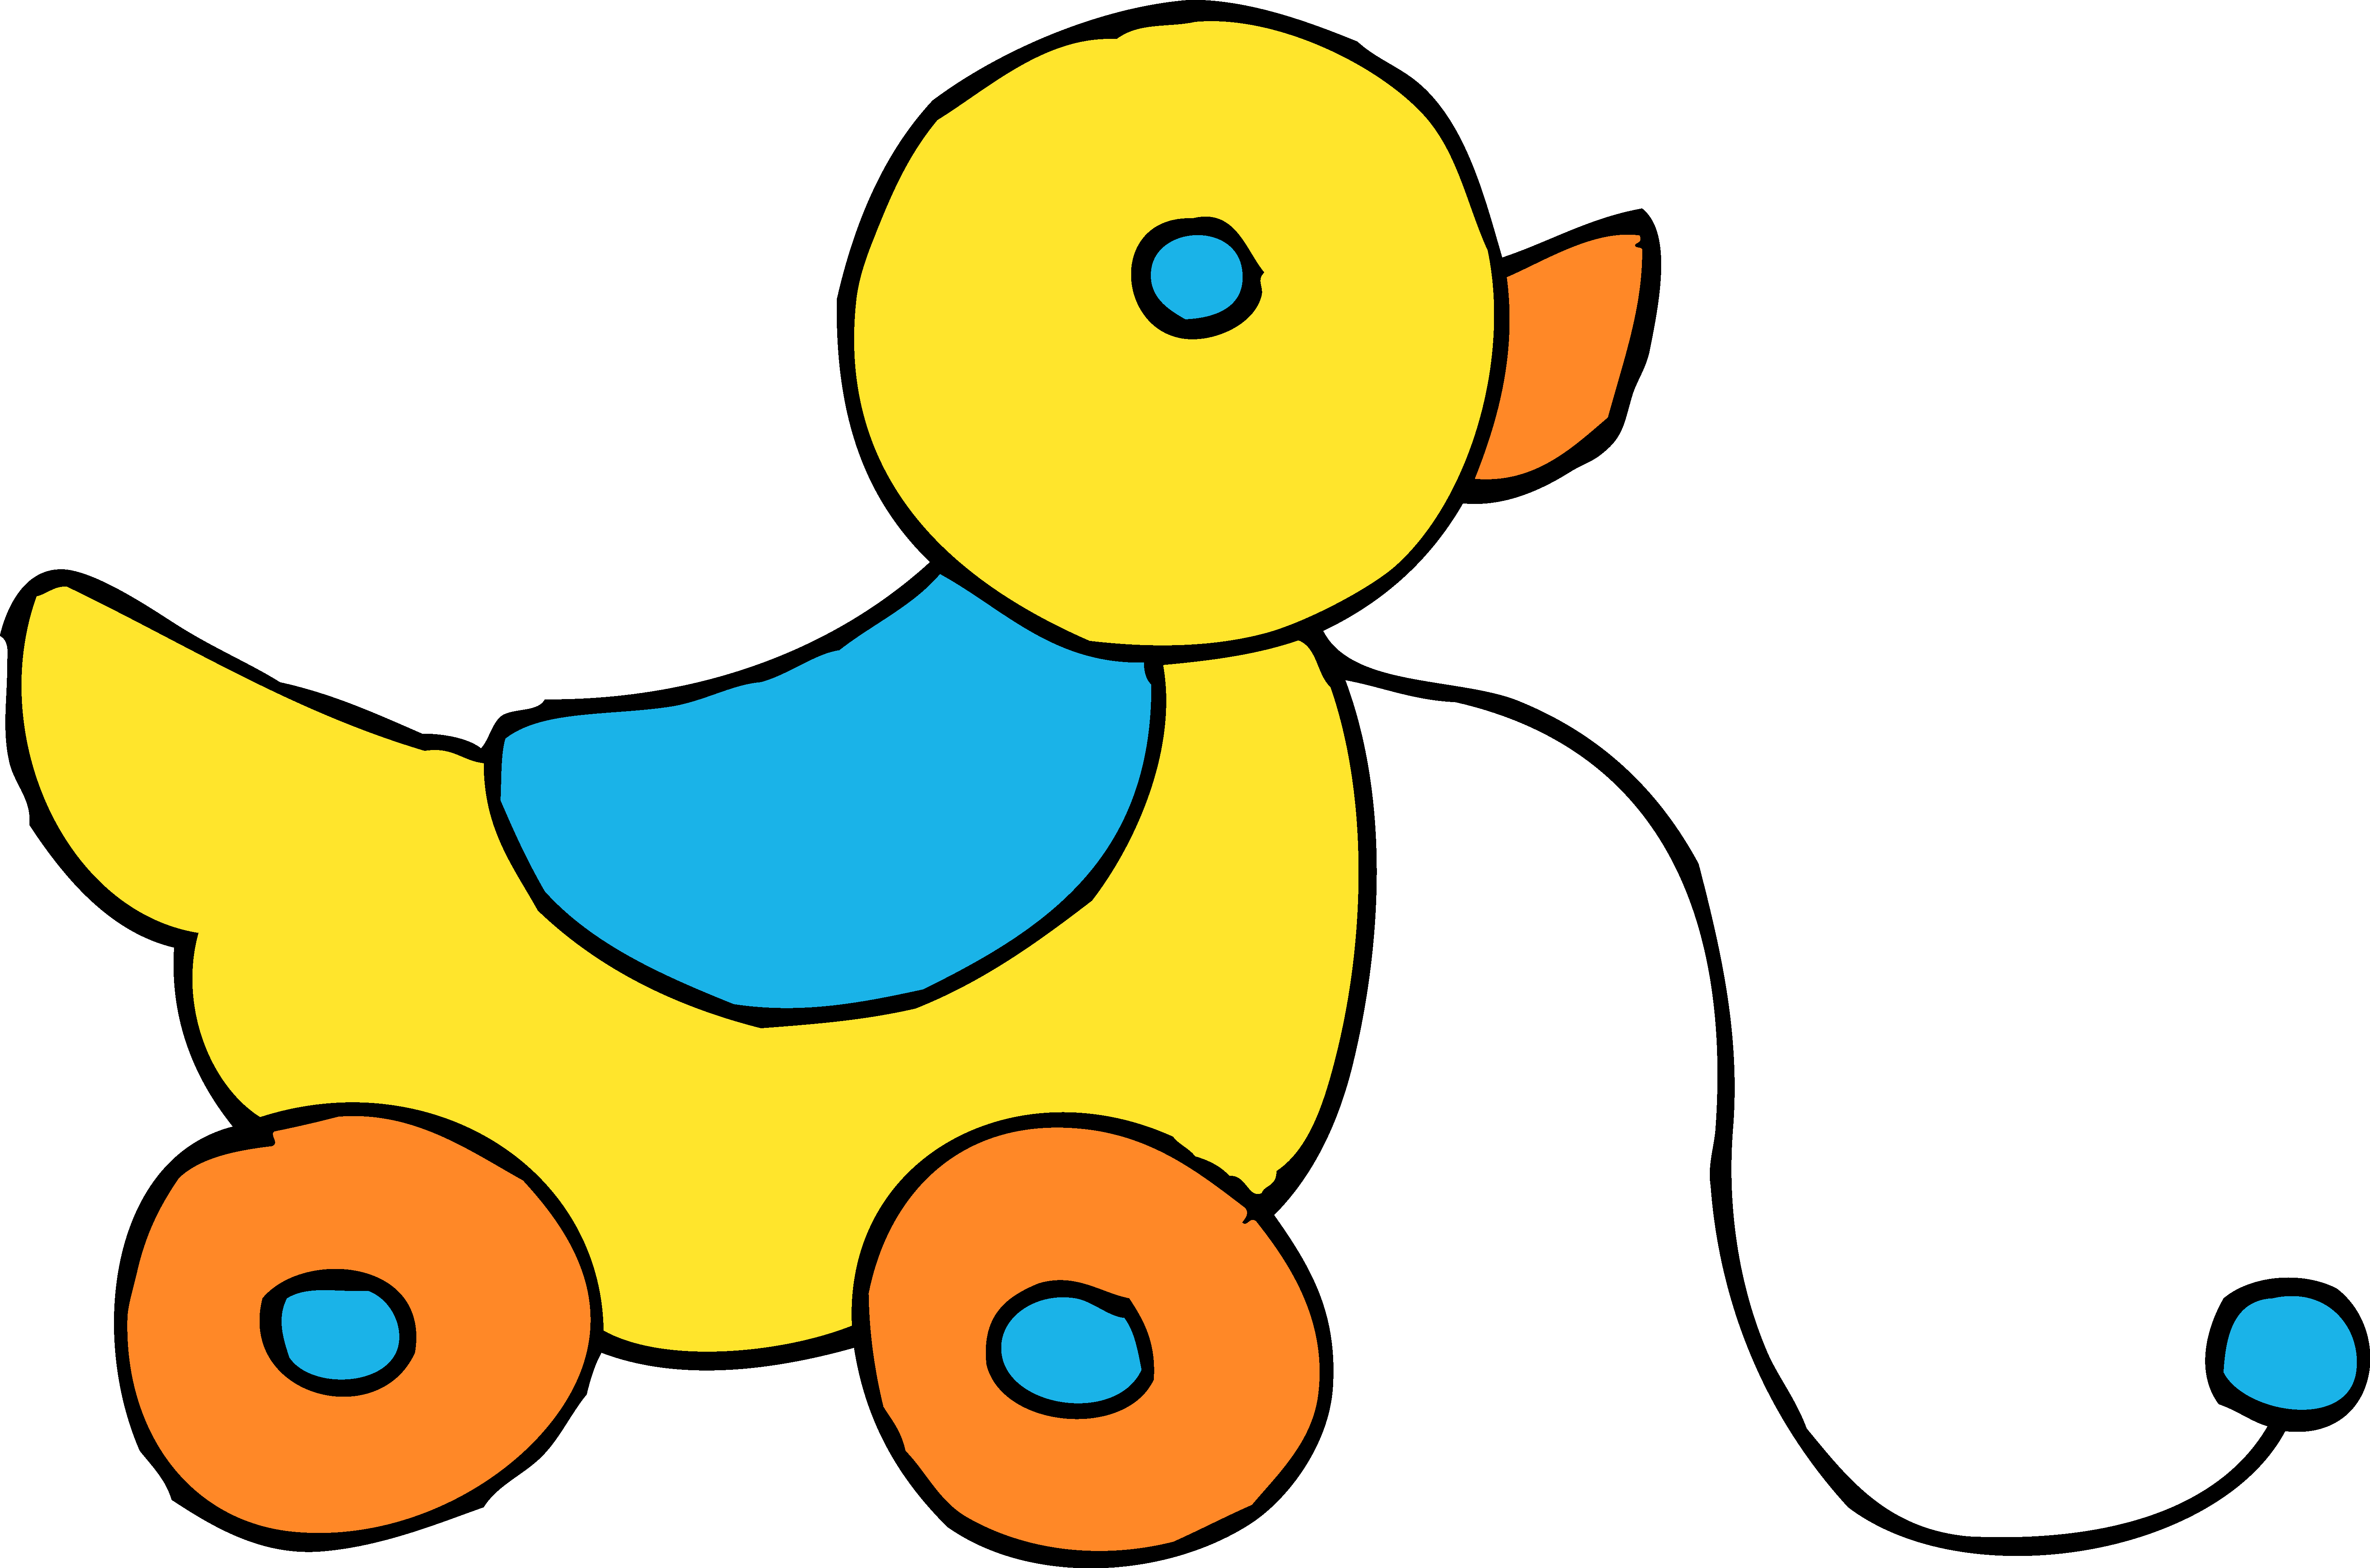 Free Toys Cliparts, Download Free Clip Art, Free Clip Art on.